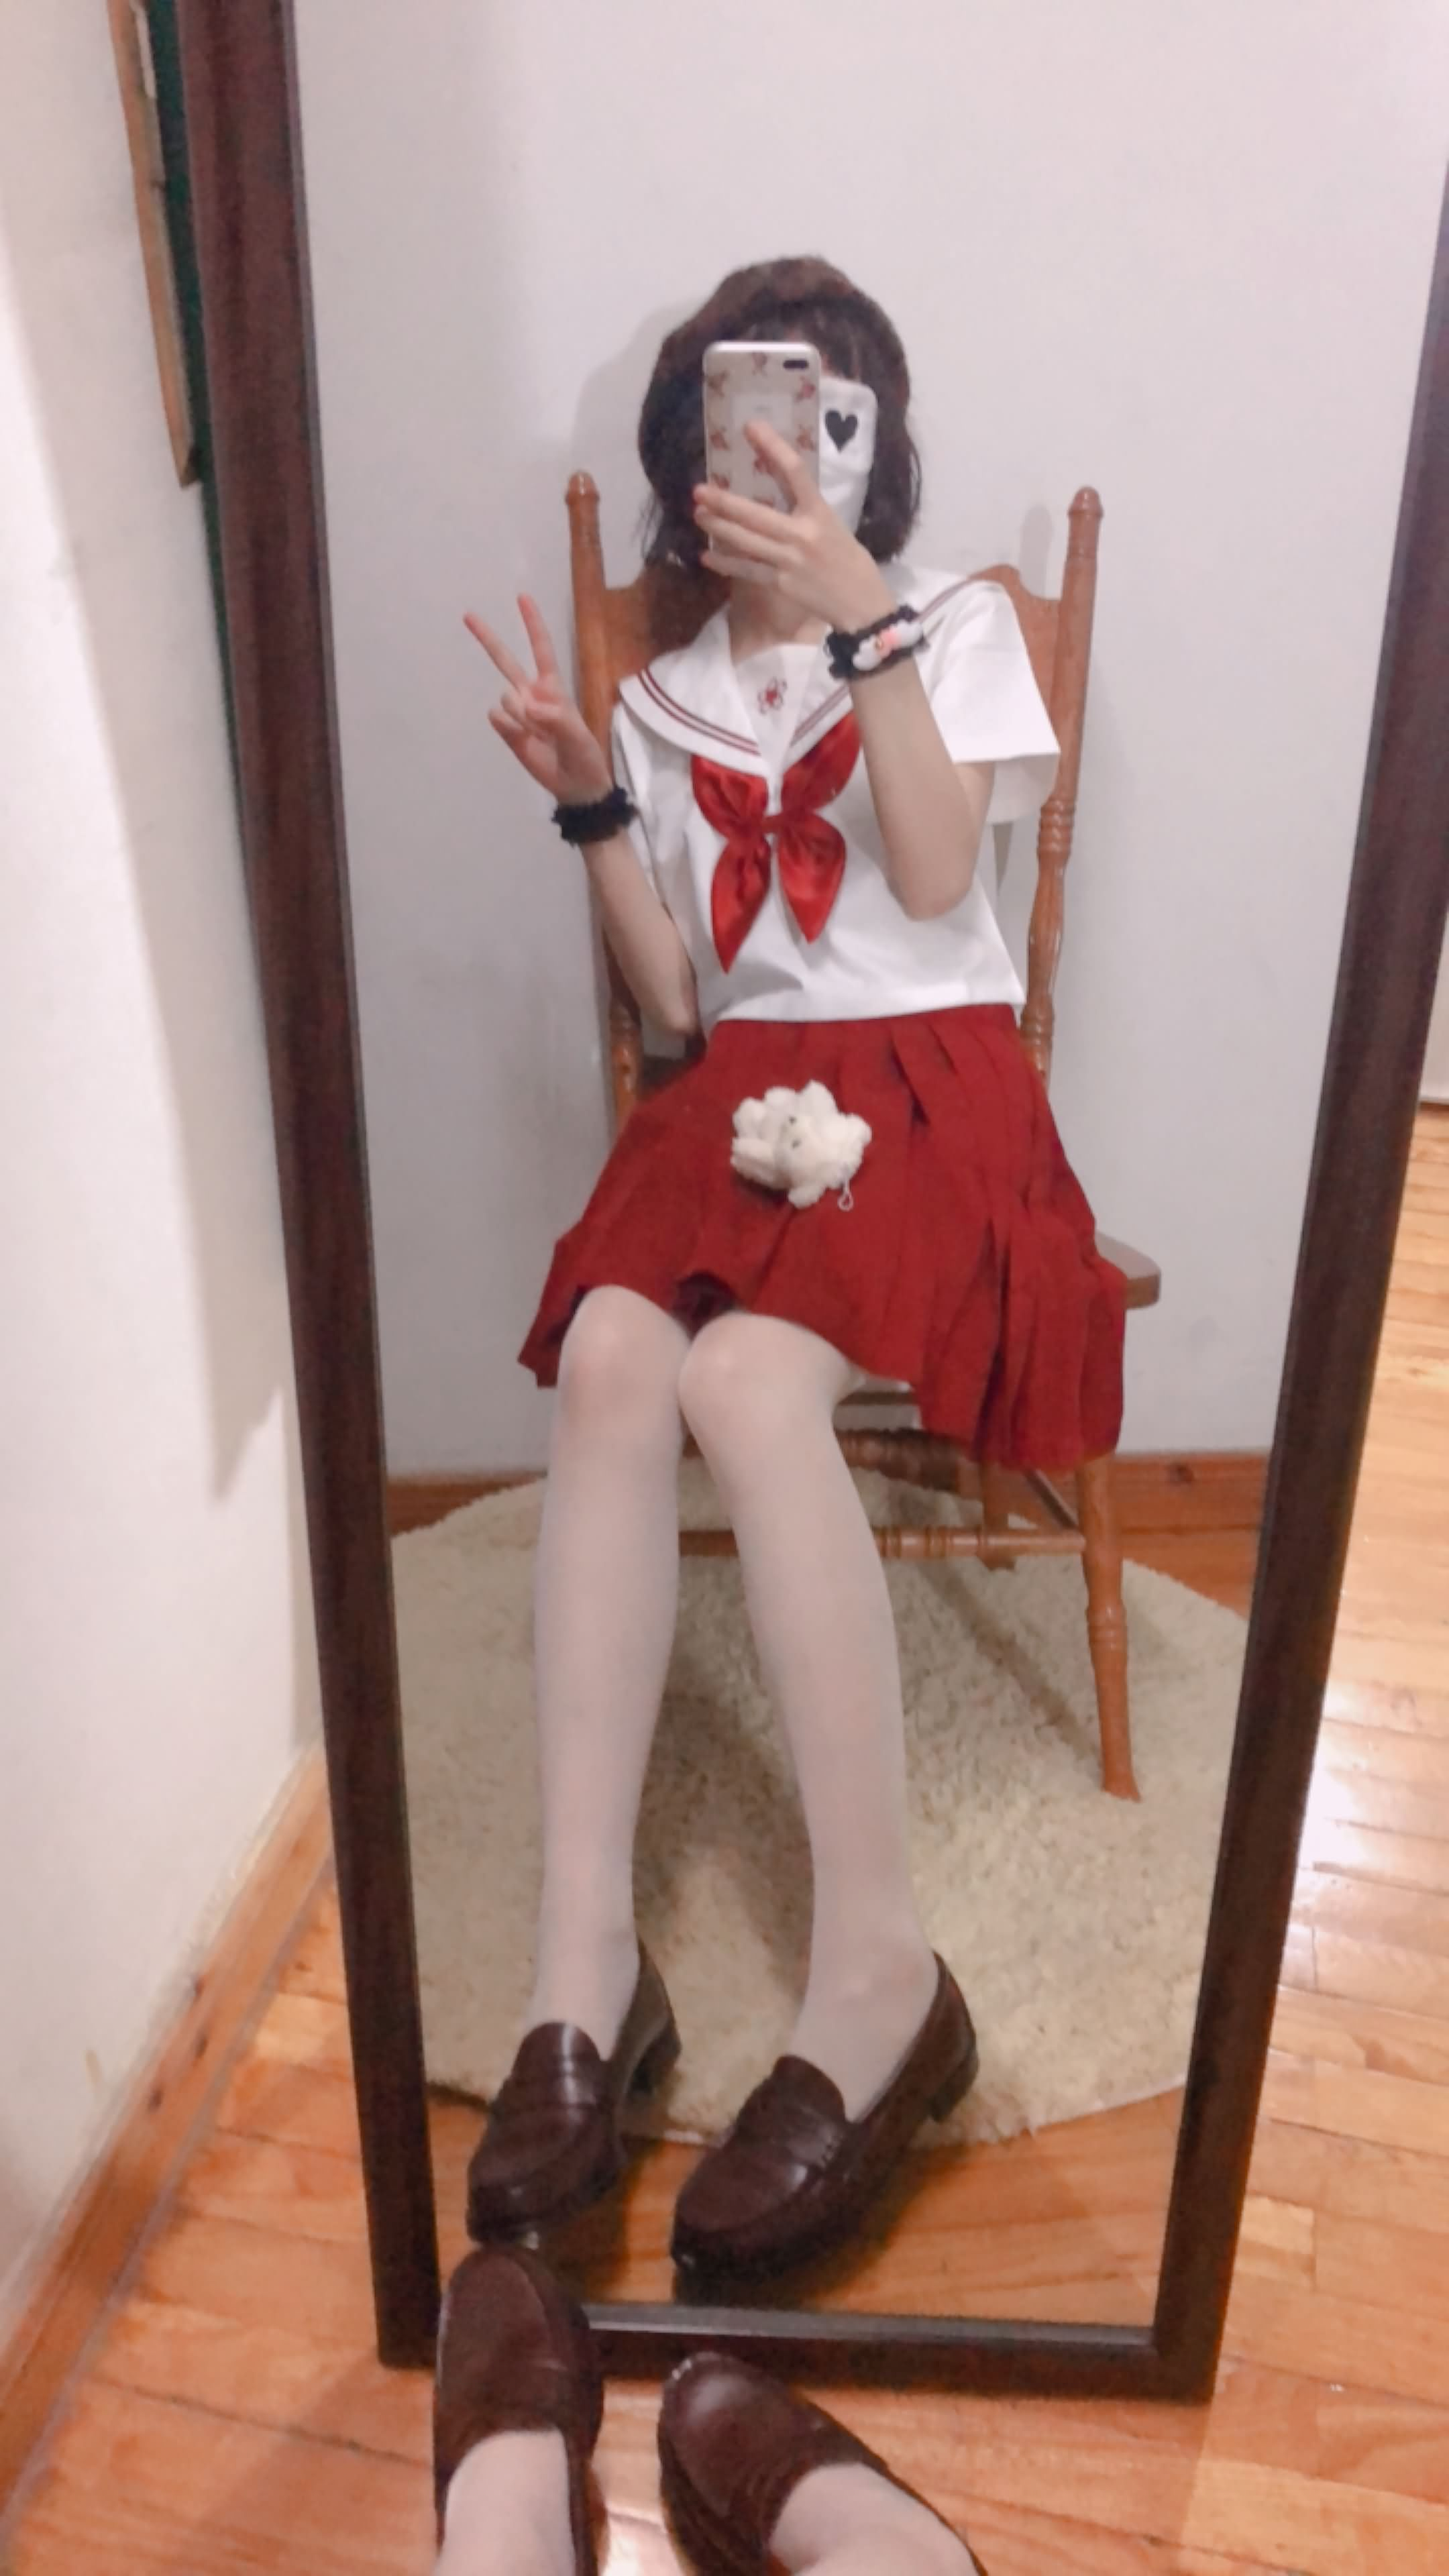 01 - Cosplay red JK uniform white stockings sweet pussy butt 小结巴-红色jk制服白丝 95P